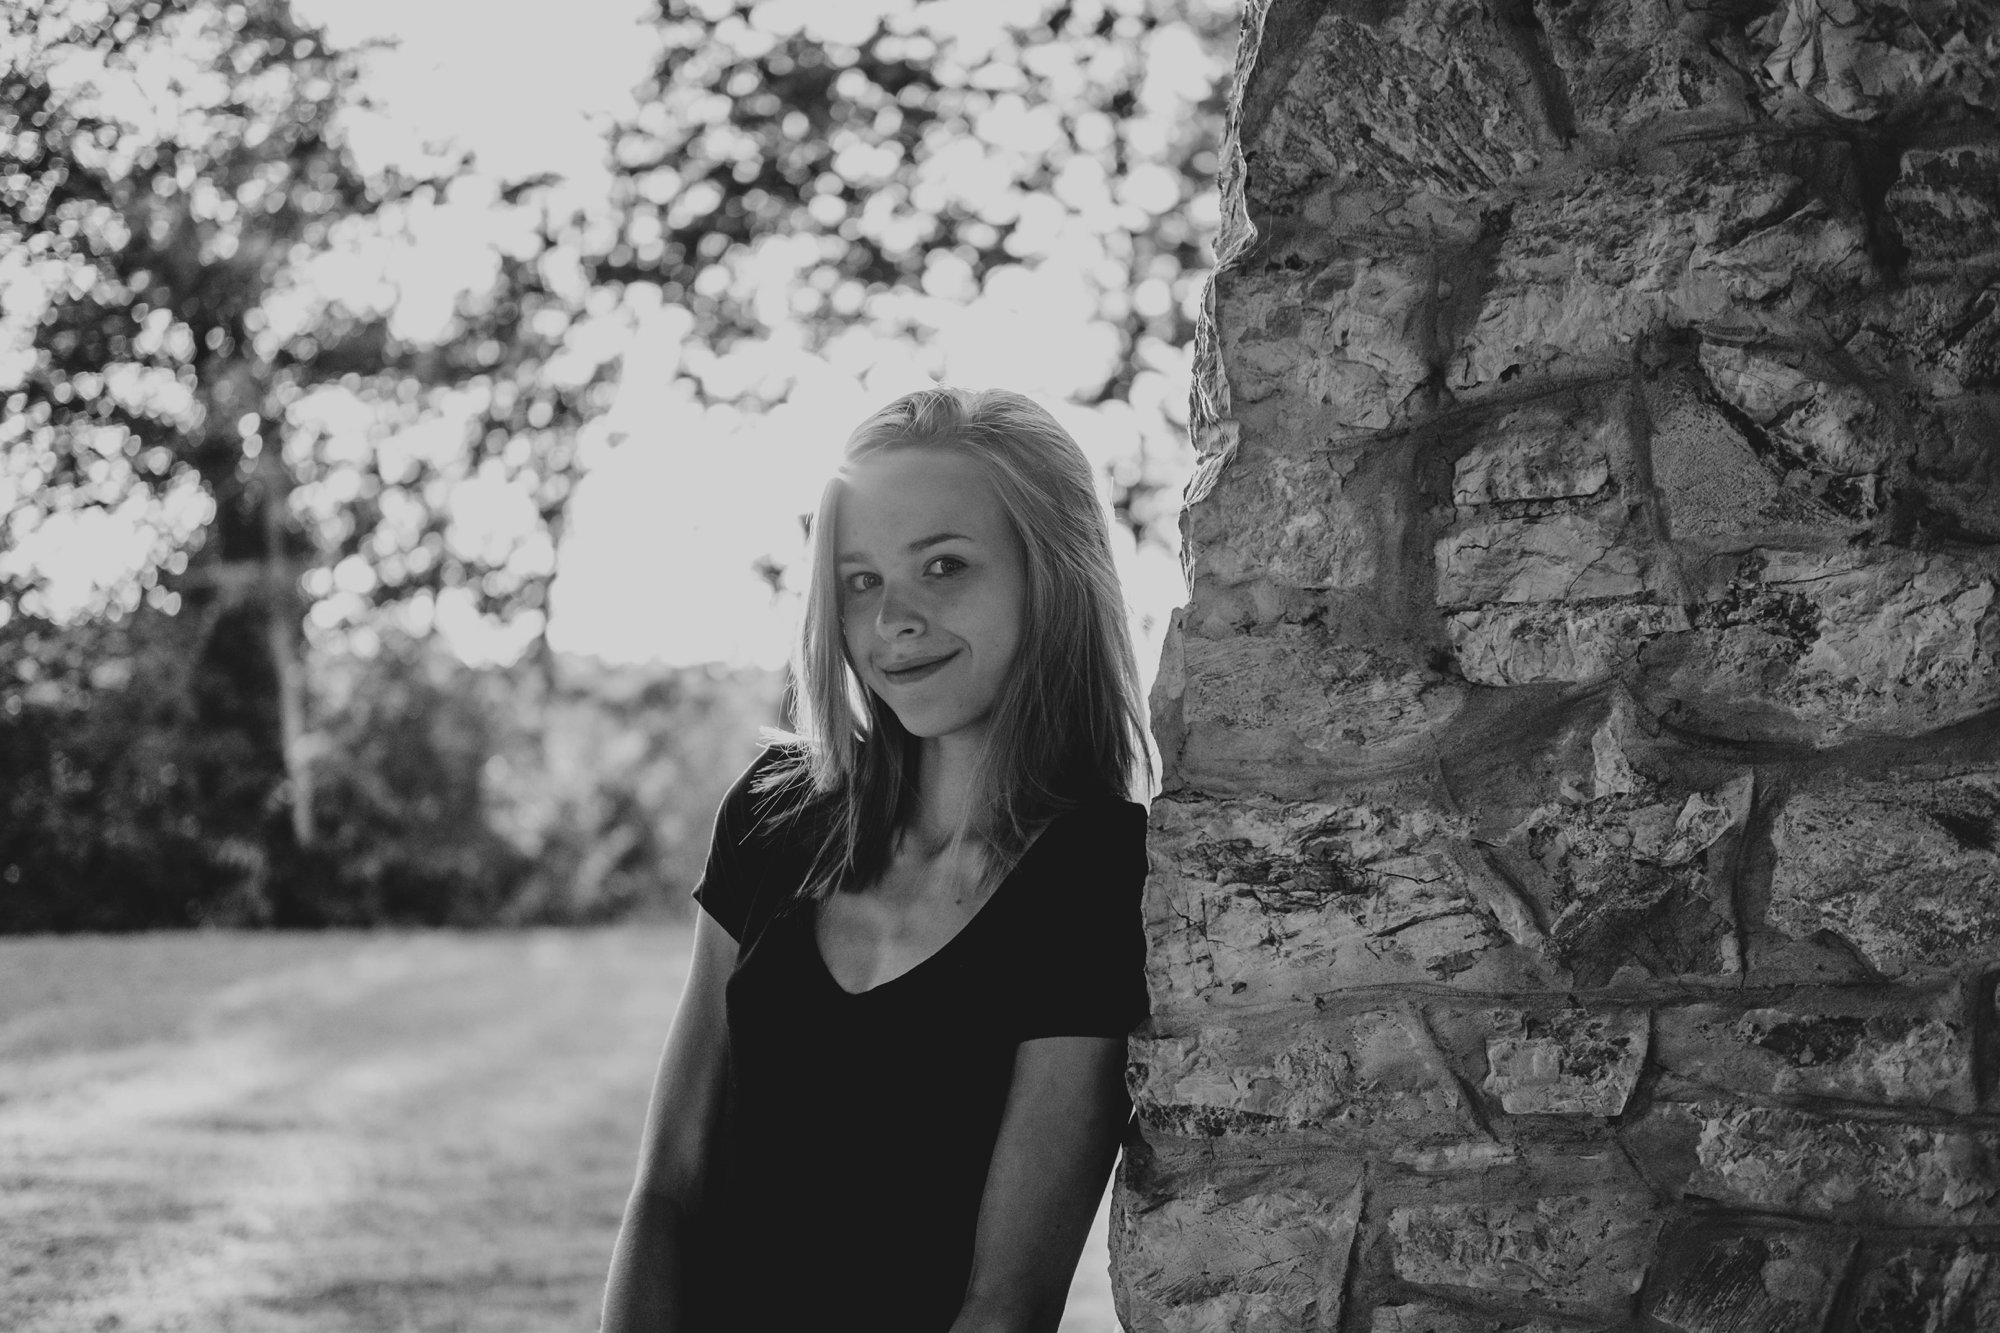 Teen girl at Sunset in Tuscany Essex Documentary Wedding Travel Family Photographer